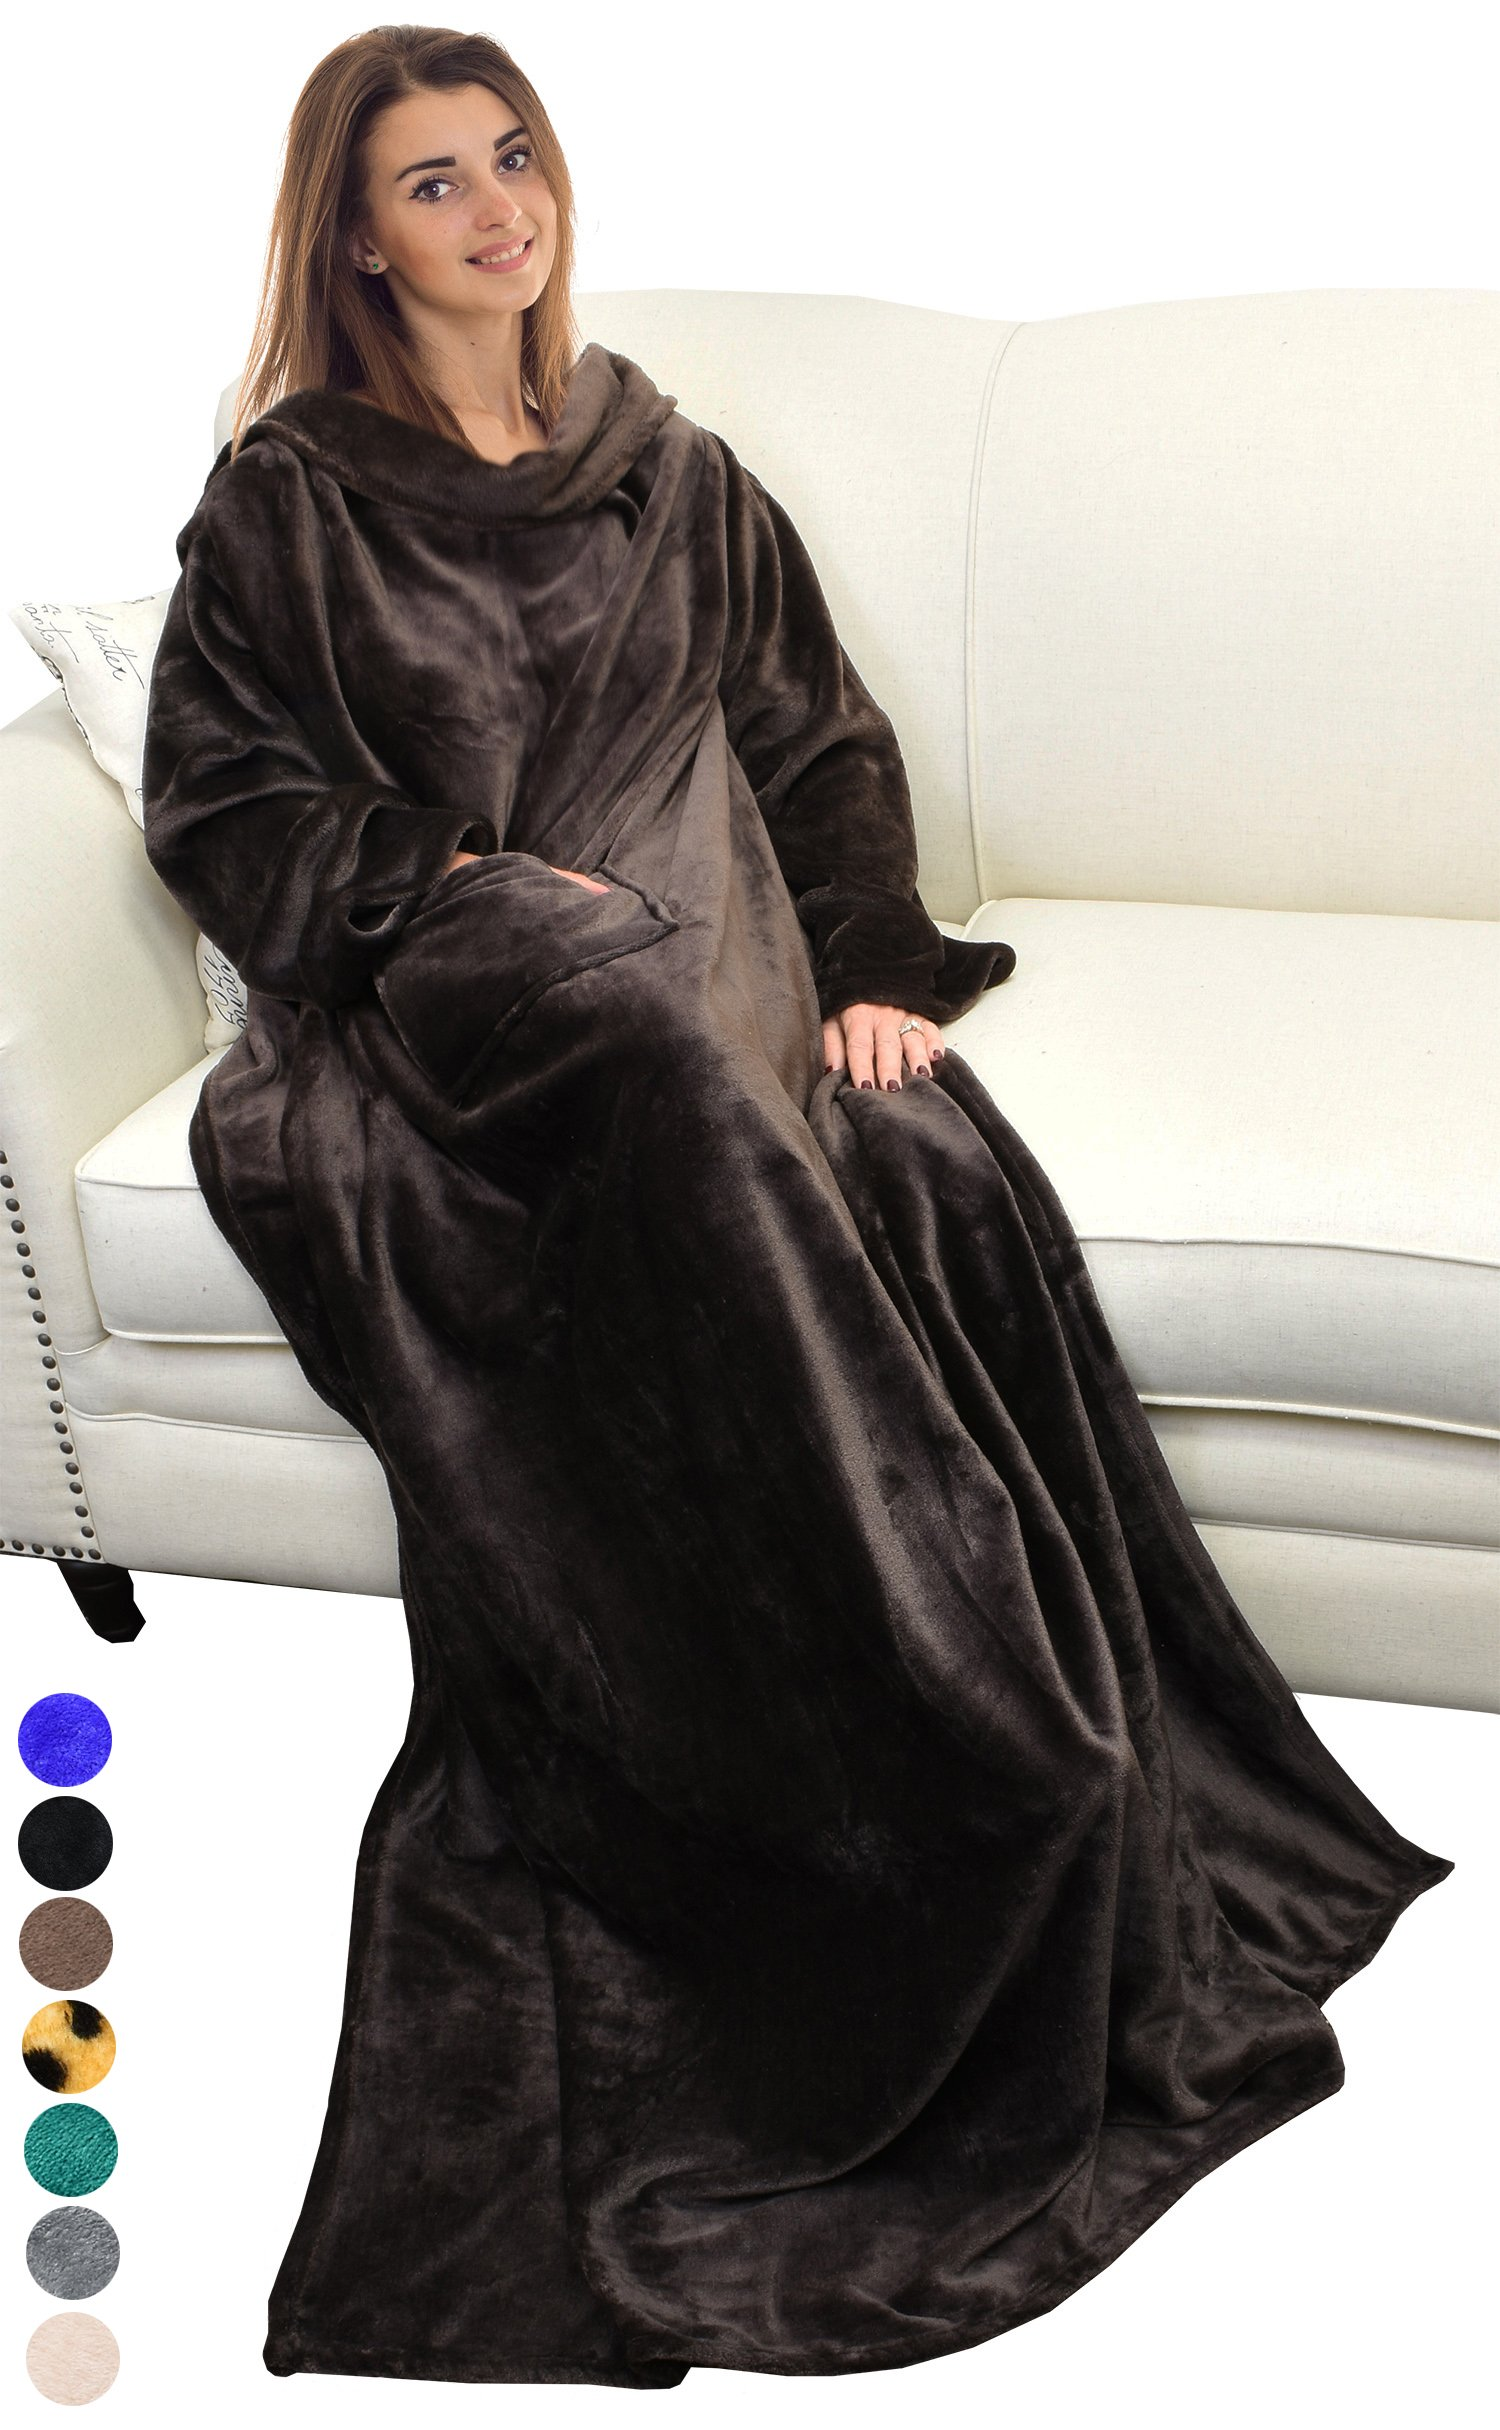 Adults Wearable Blanket with Sleeves Arms,Soft Cozy Plush Fleece Wrap Throws Blanket Robe for Women and Men Brown By Catalonia